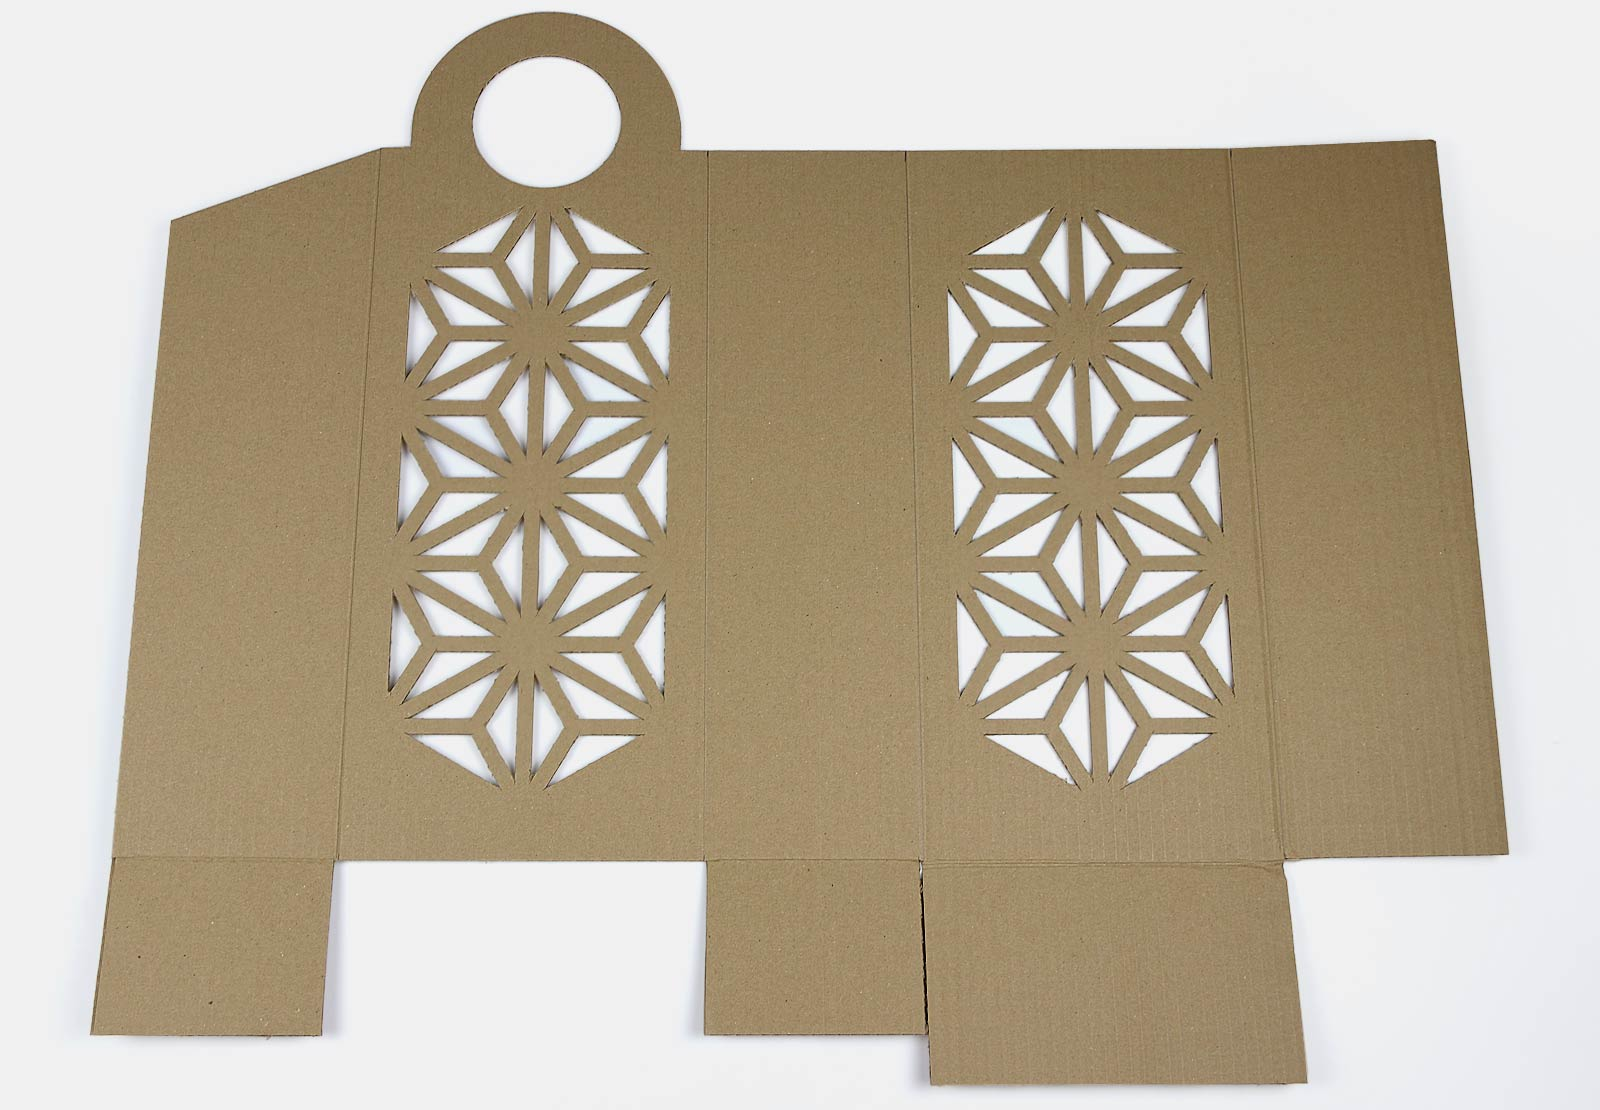 a shape of a catch-all box cut out of cardboard